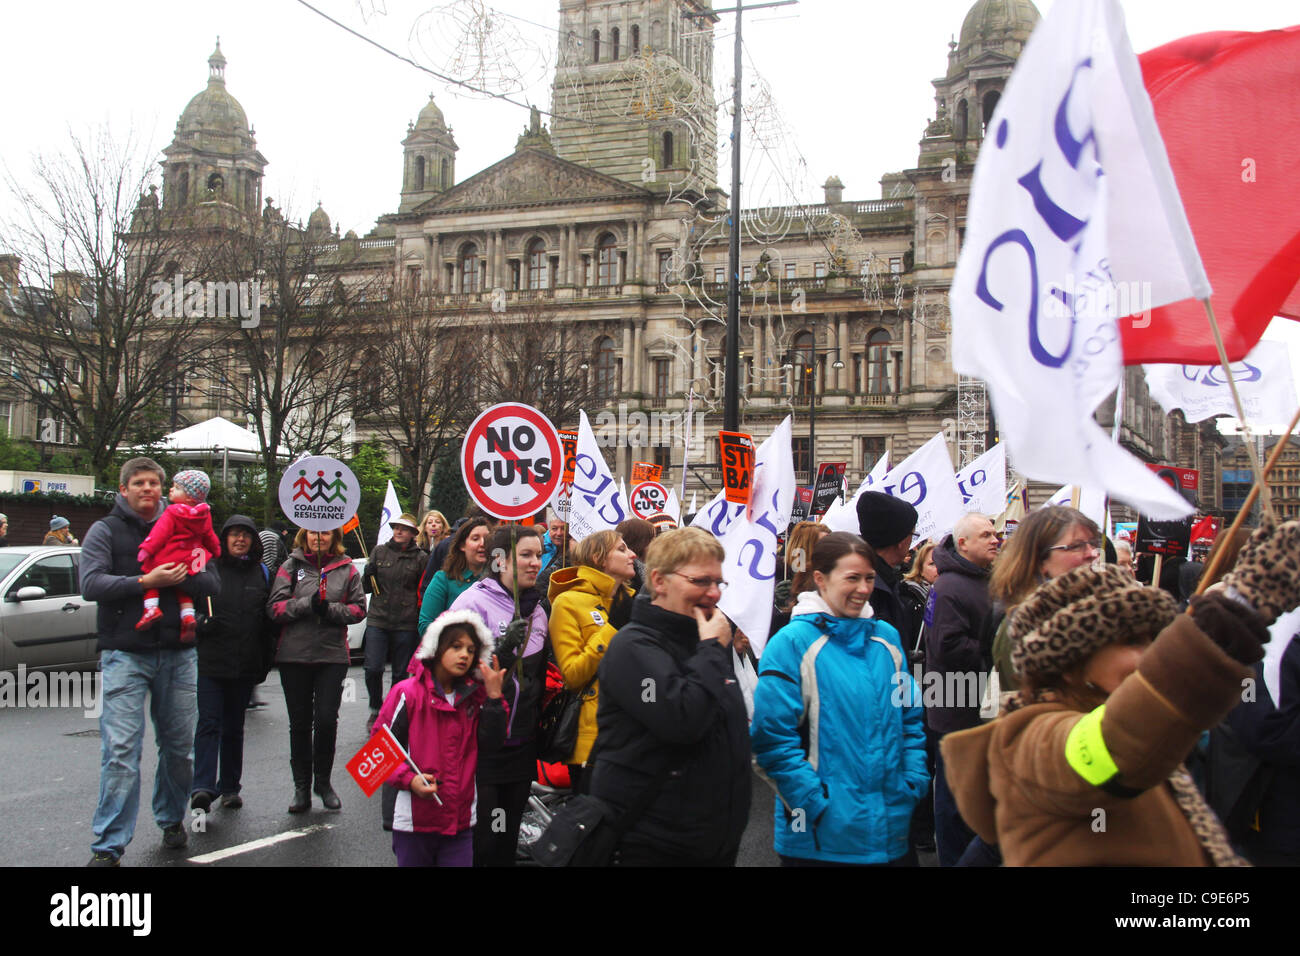 30/11/11 Day of action Glasgow.  Public service unions protest against pension reforms. - Stock Image